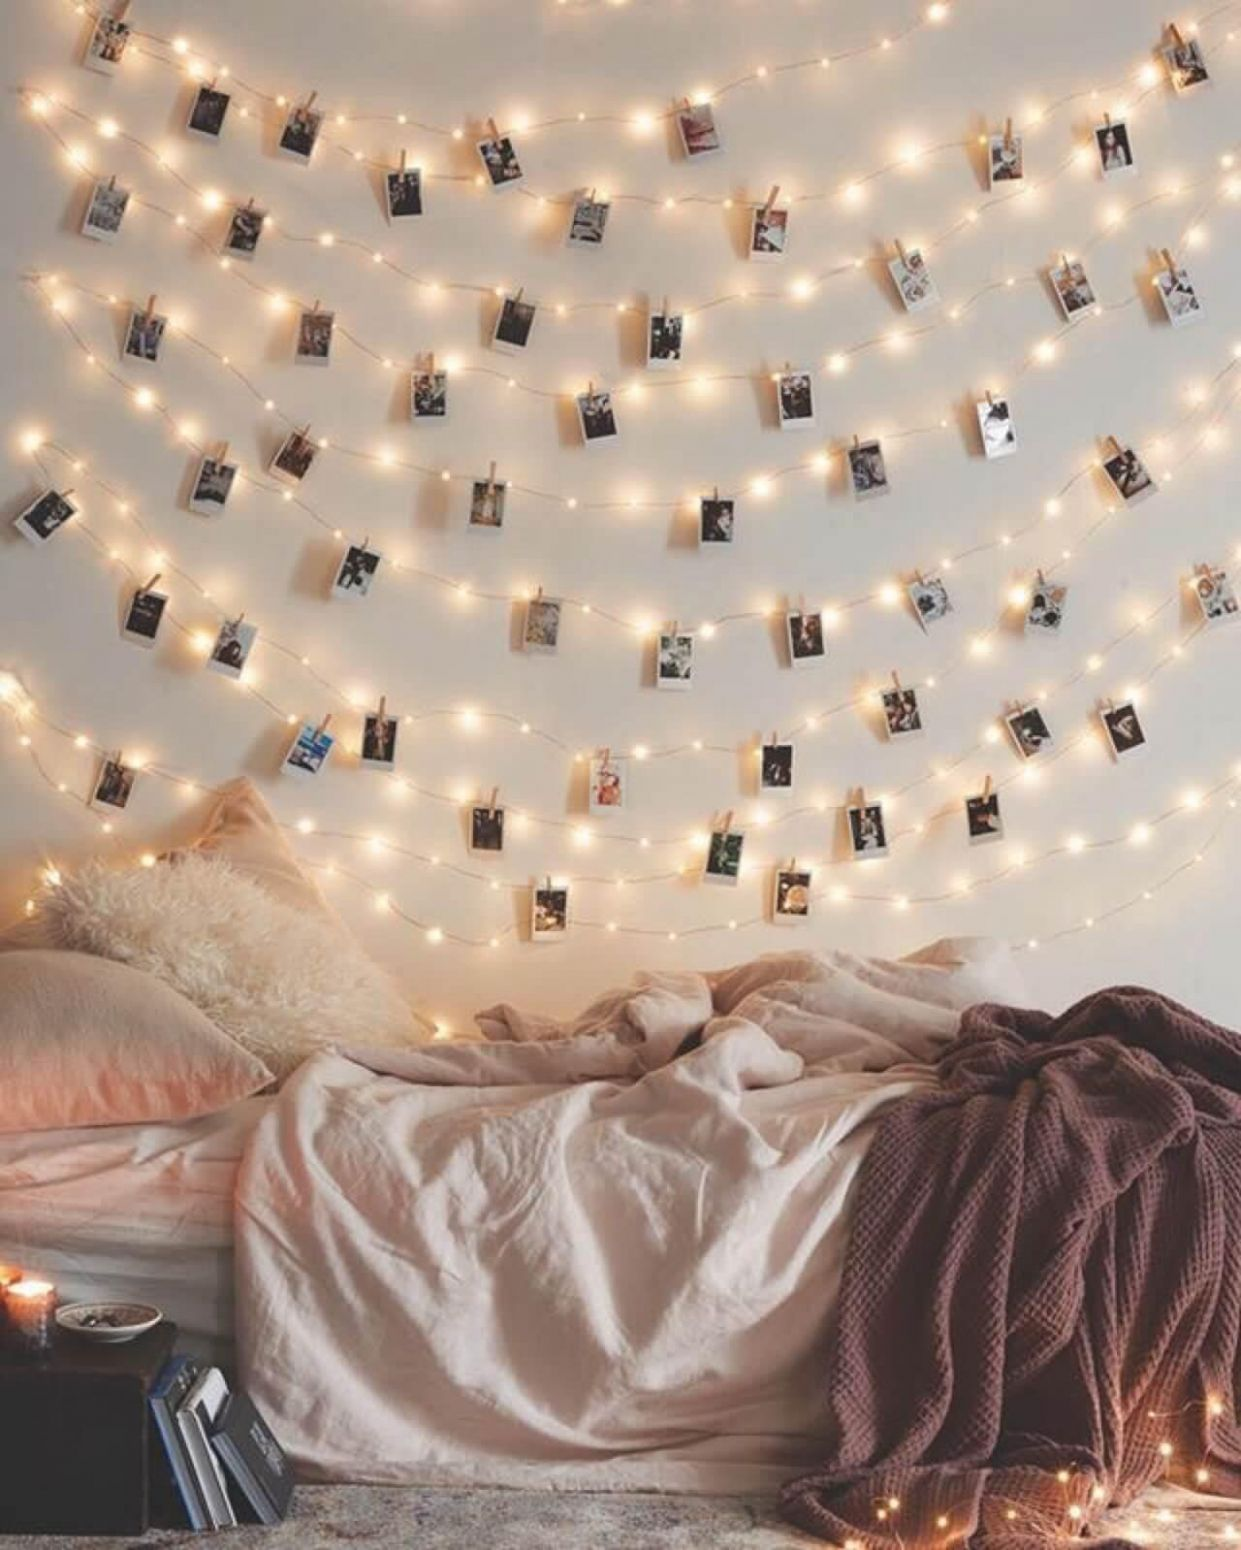 Polaroid-style Instagram Wall Art With Twinkle Lights - Decoration ..